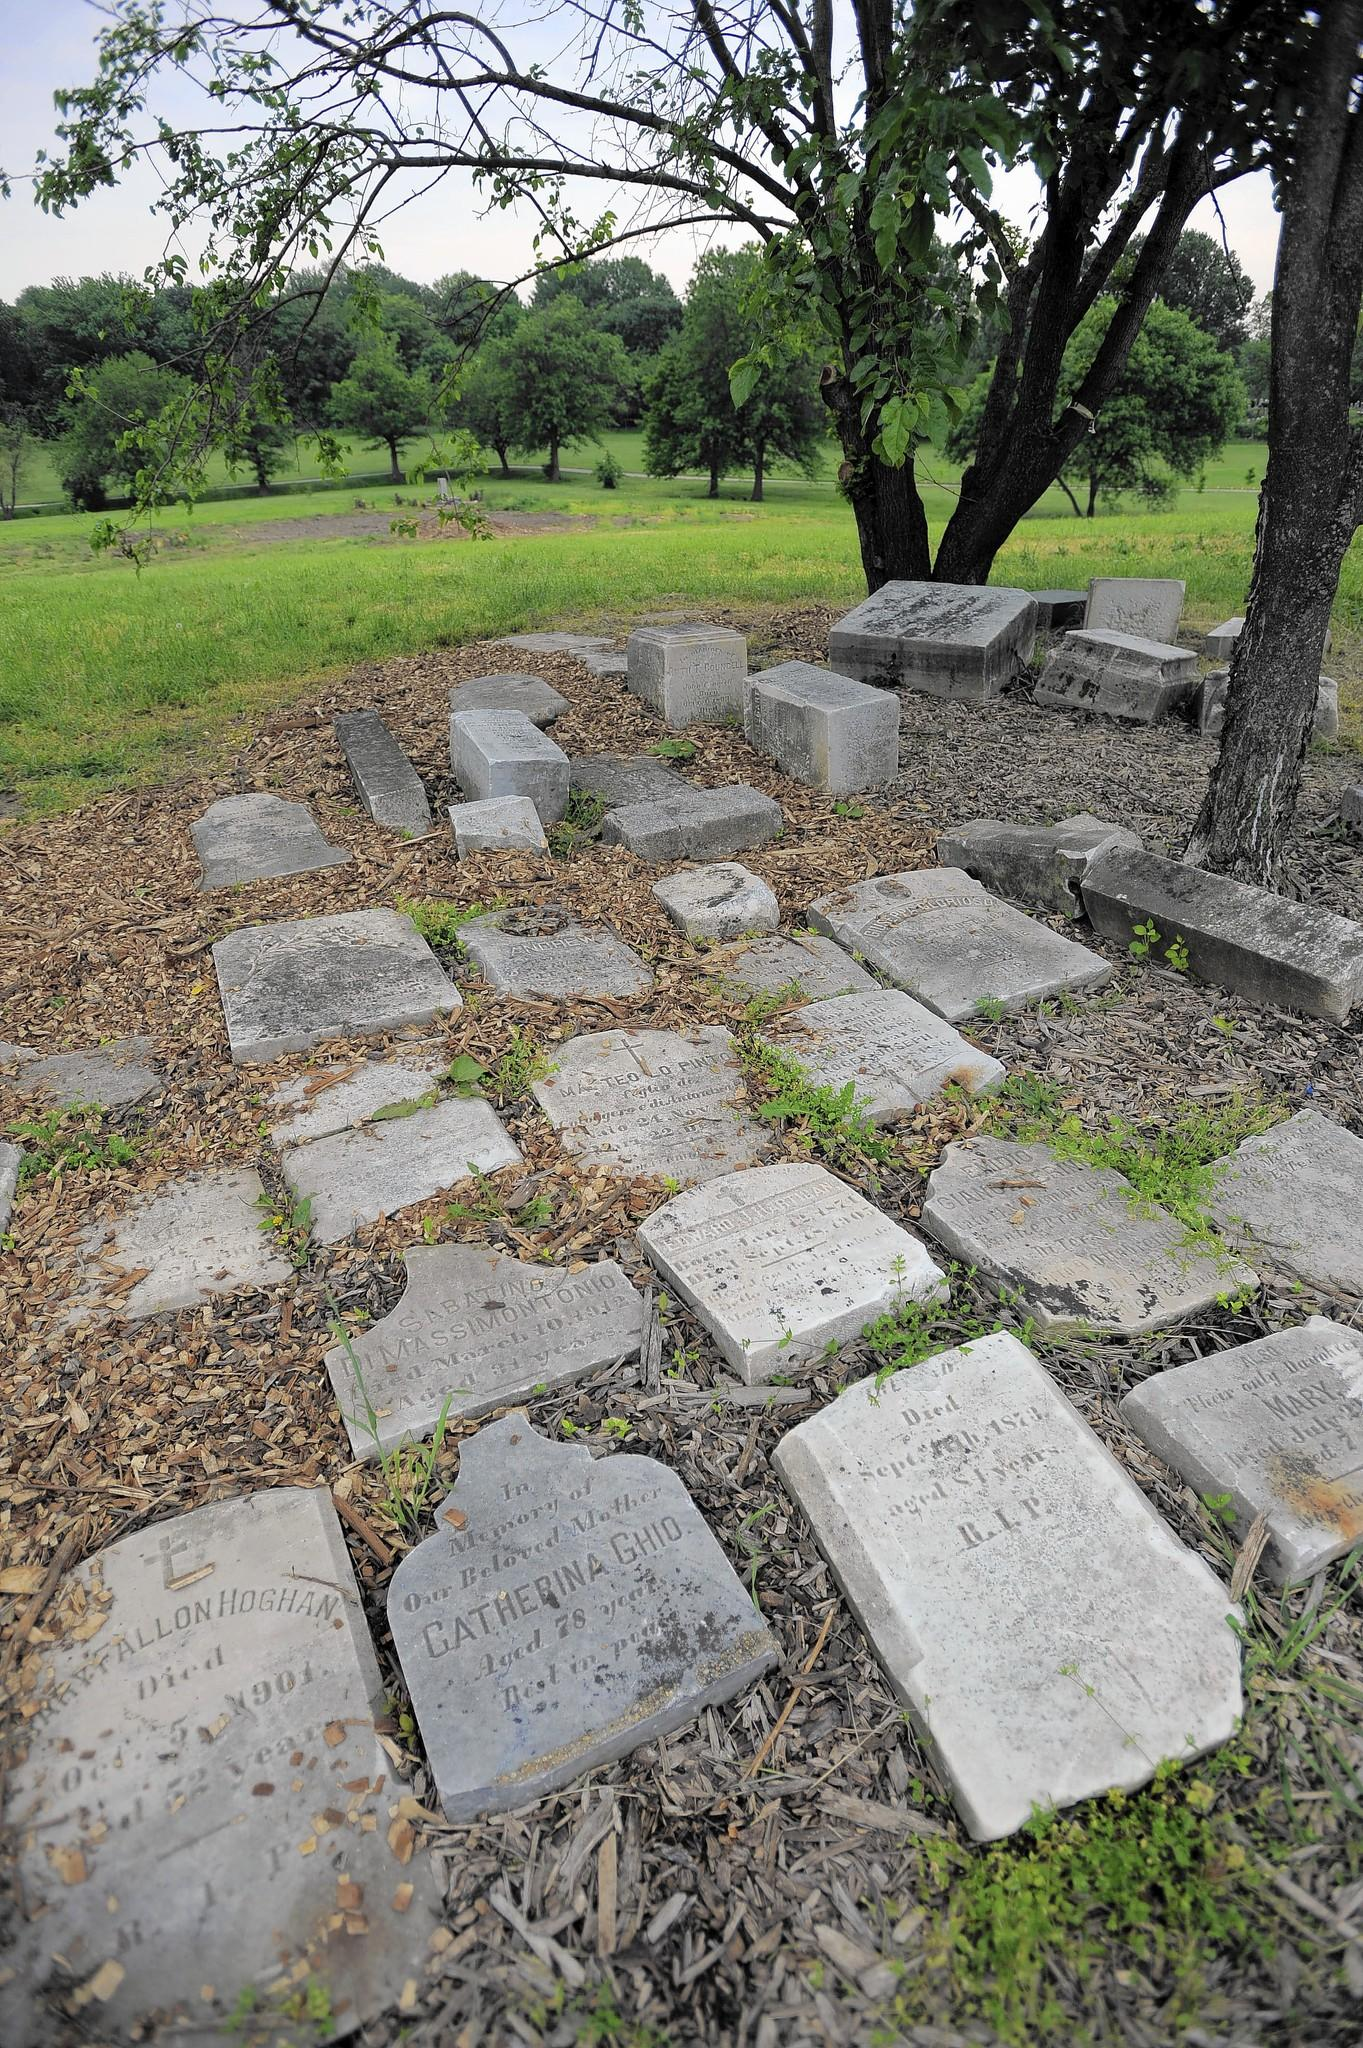 For his Eagle Scout project, John Patrick Nolan III took action at St. Vincent's Cemetery, in which cemetery stones were reclaimed, and the land has been cleared of overgrowth.